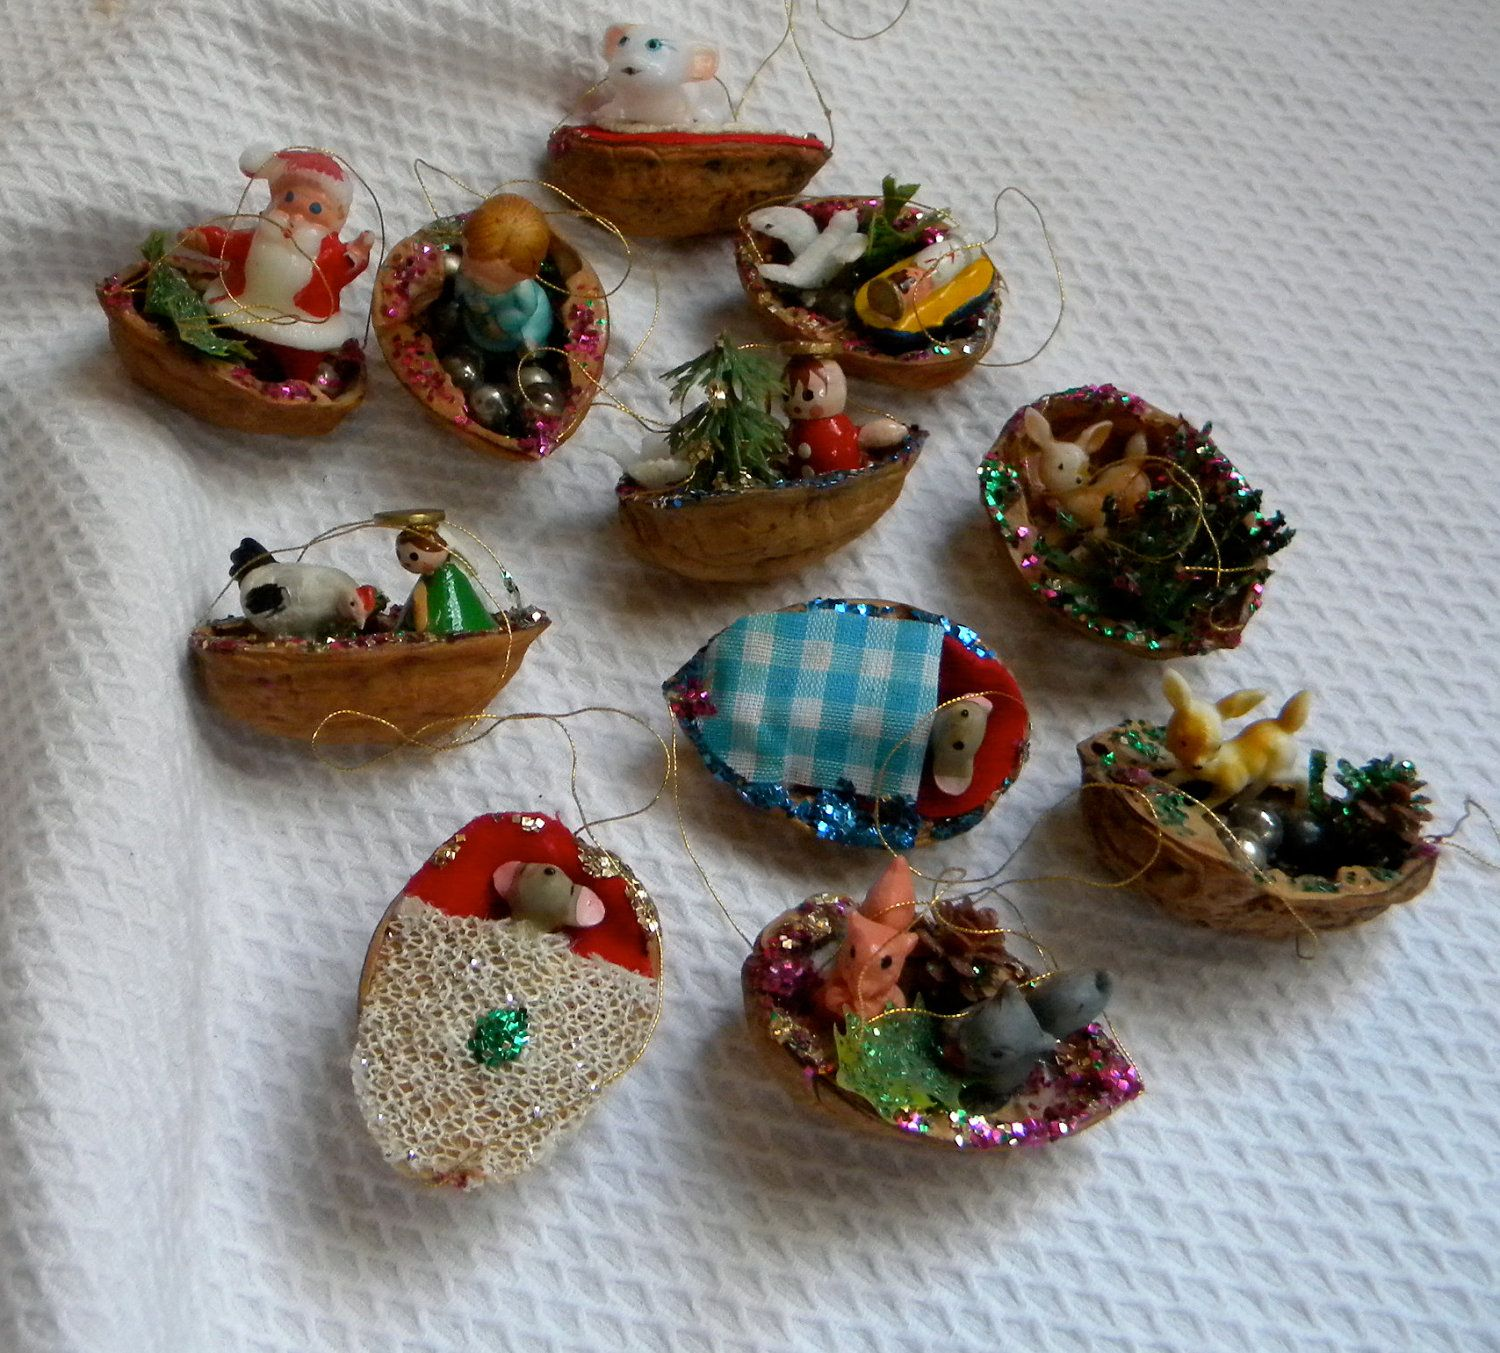 Handmade christmas ornaments on etsy - Vintage Hand Made Walnut Shell Christmas Ornament Lot 11 Kitsch Sleeping Mouse Santa Reindeer Babies Plastic